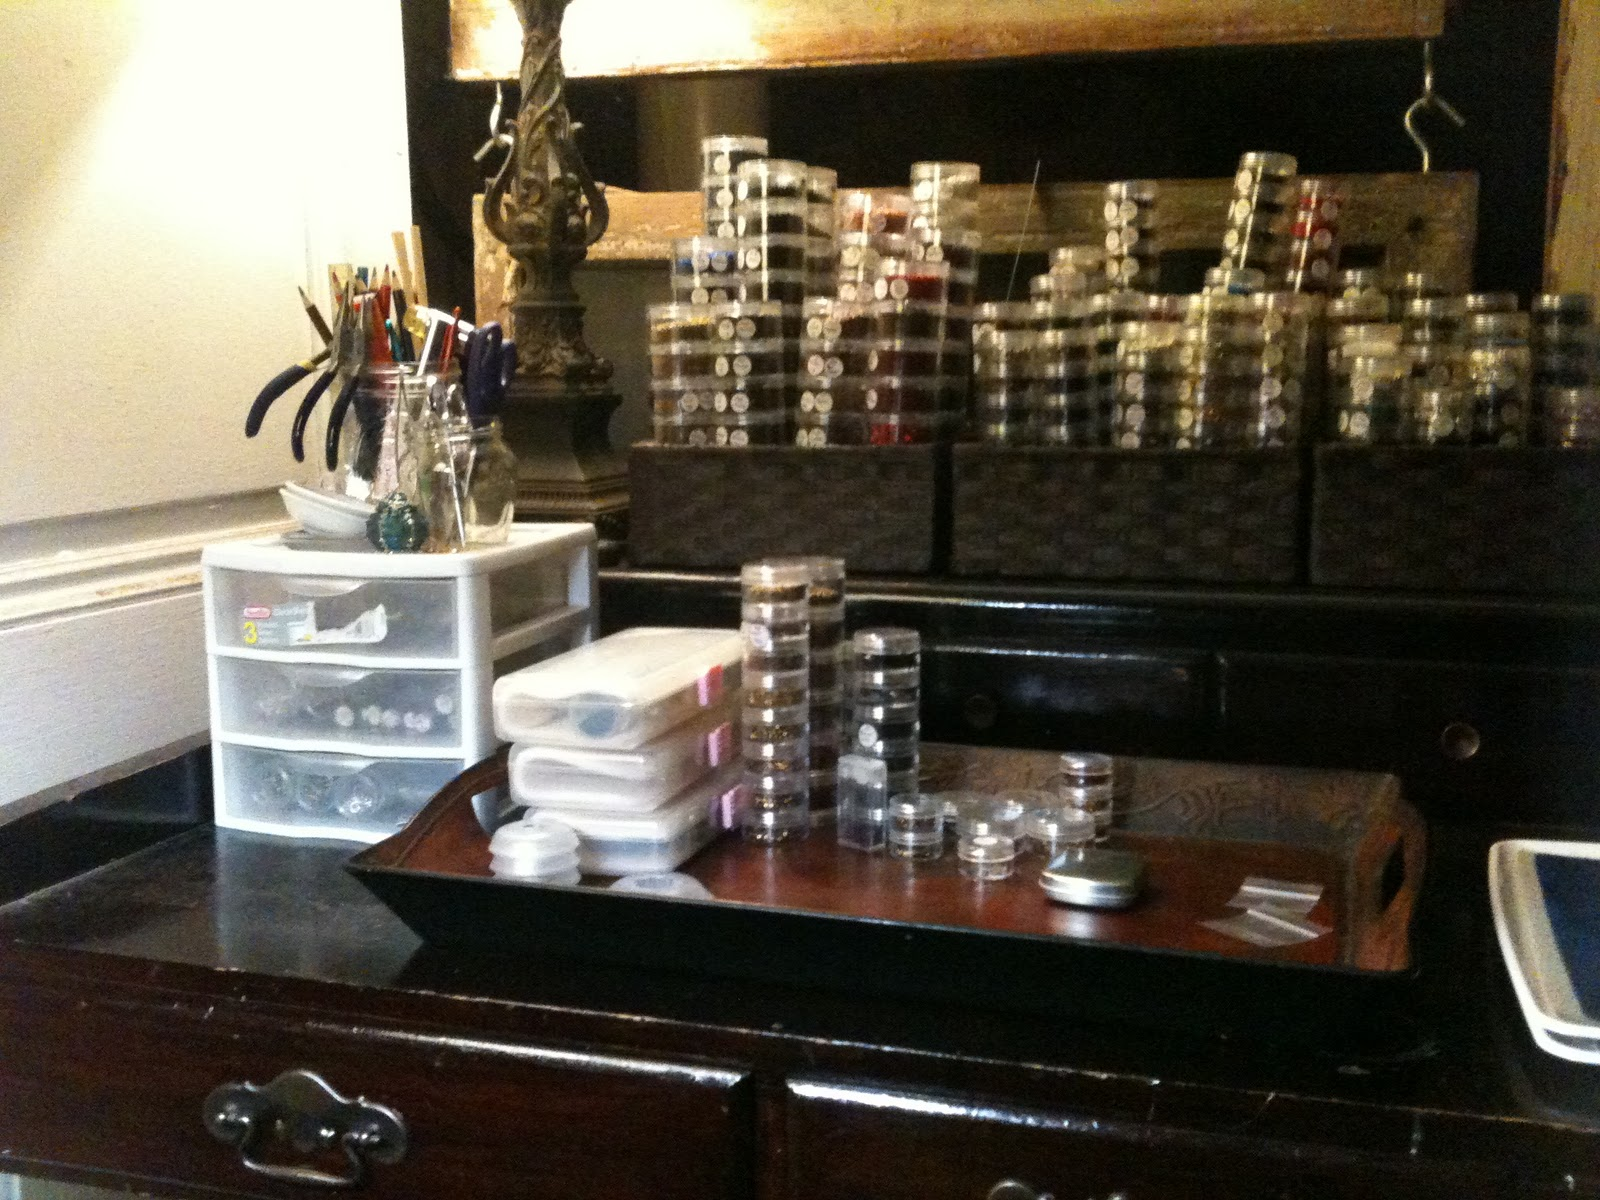 Now I need to get back to work on my Secret Santa for our Beading Daily swap! & The Bead Diaries: Storage Solutions